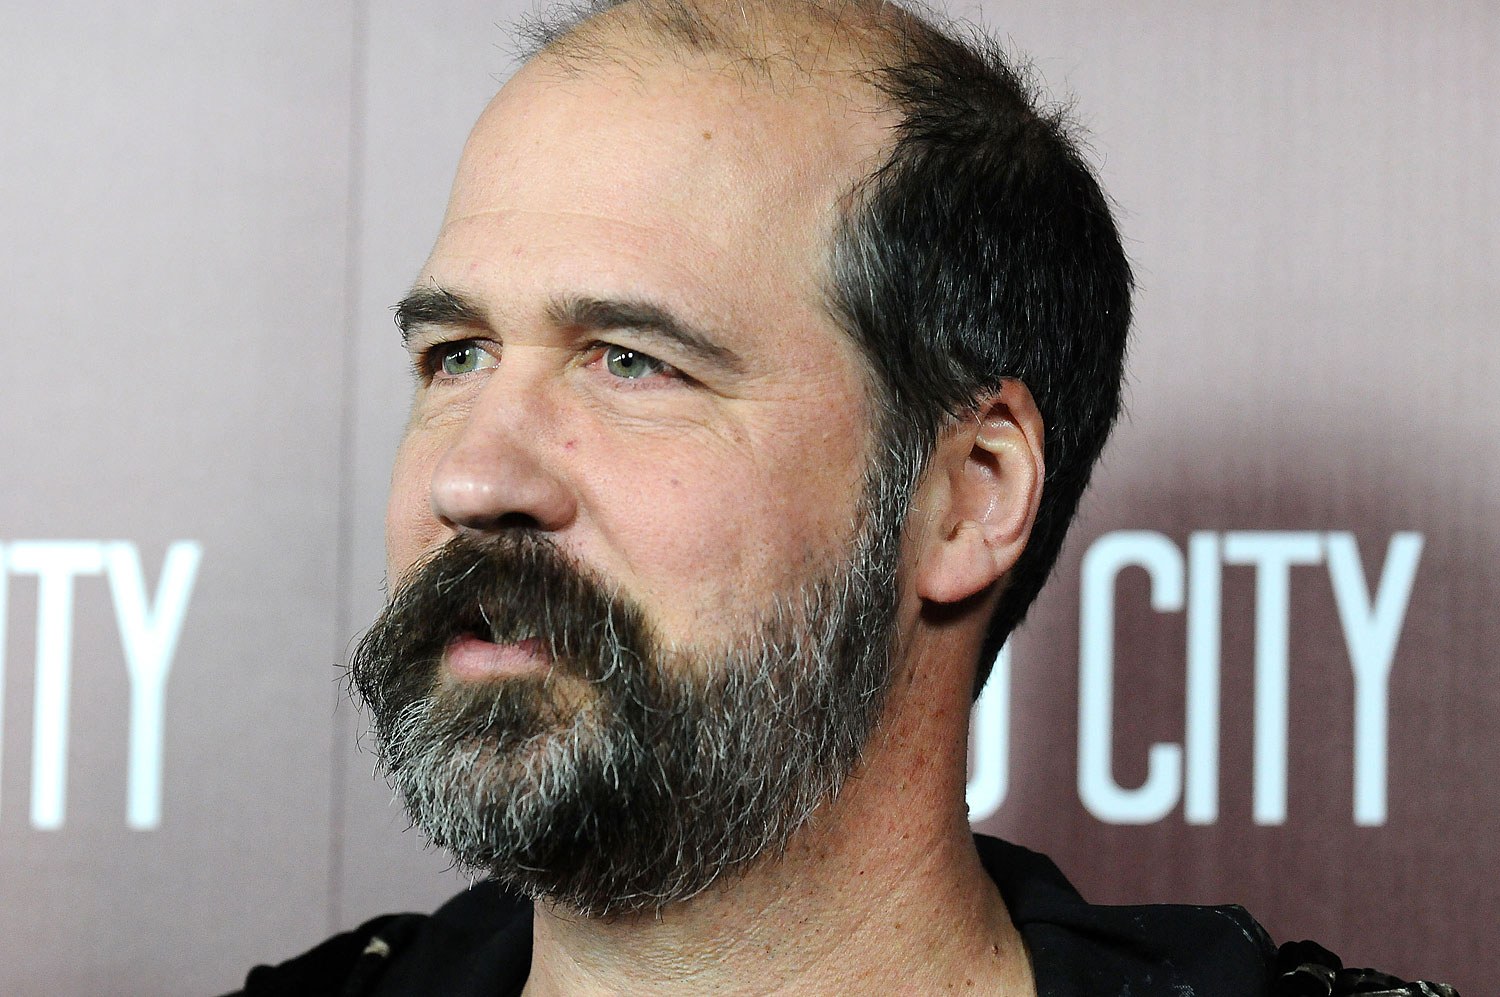 Krist Novoselic attends a premiere in Hollywood in 2013.